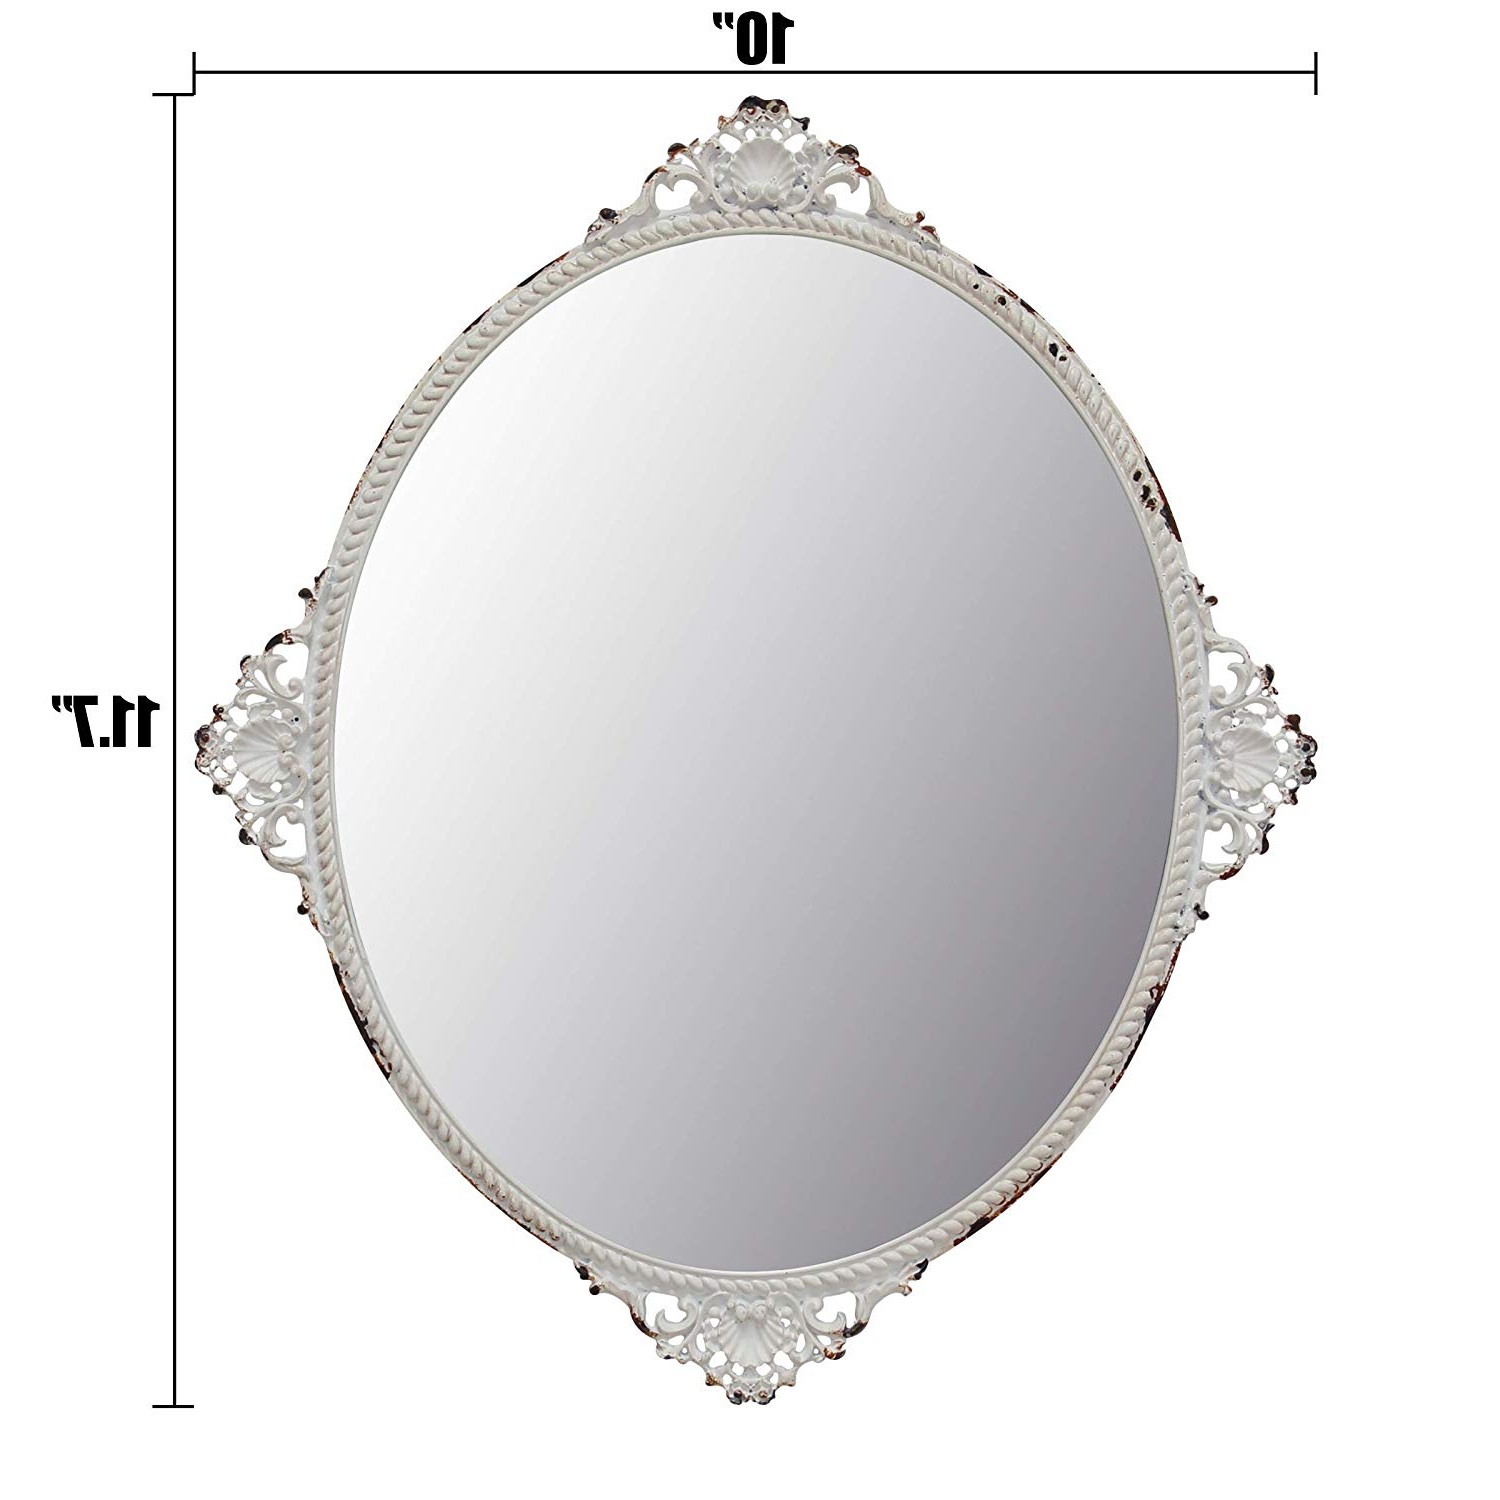 Most Recently Released Decorative Bedroom Wall Mirrors With Regard To Stonebriar Decorative Oval Antique White Metal Wall Mirror, Vintage Home  Décor For Living Room, Kitchen, Bedroom, Or Hallway, French Country Decor, (View 13 of 20)